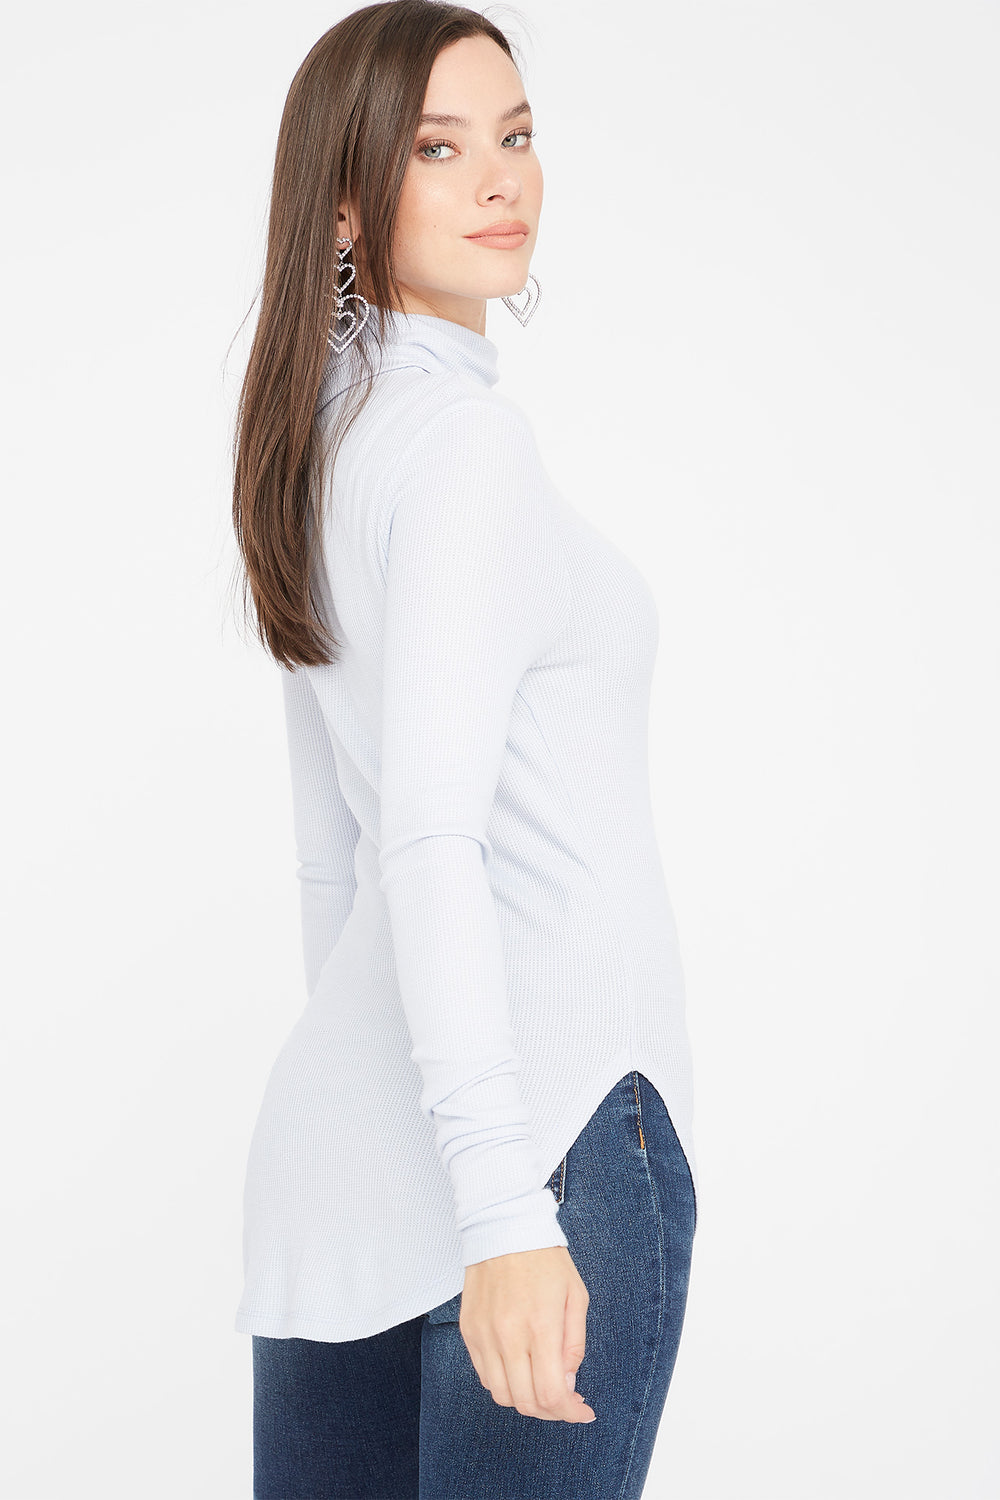 Thermal Turtleneck Long Sleeve Tunic Top Light Blue